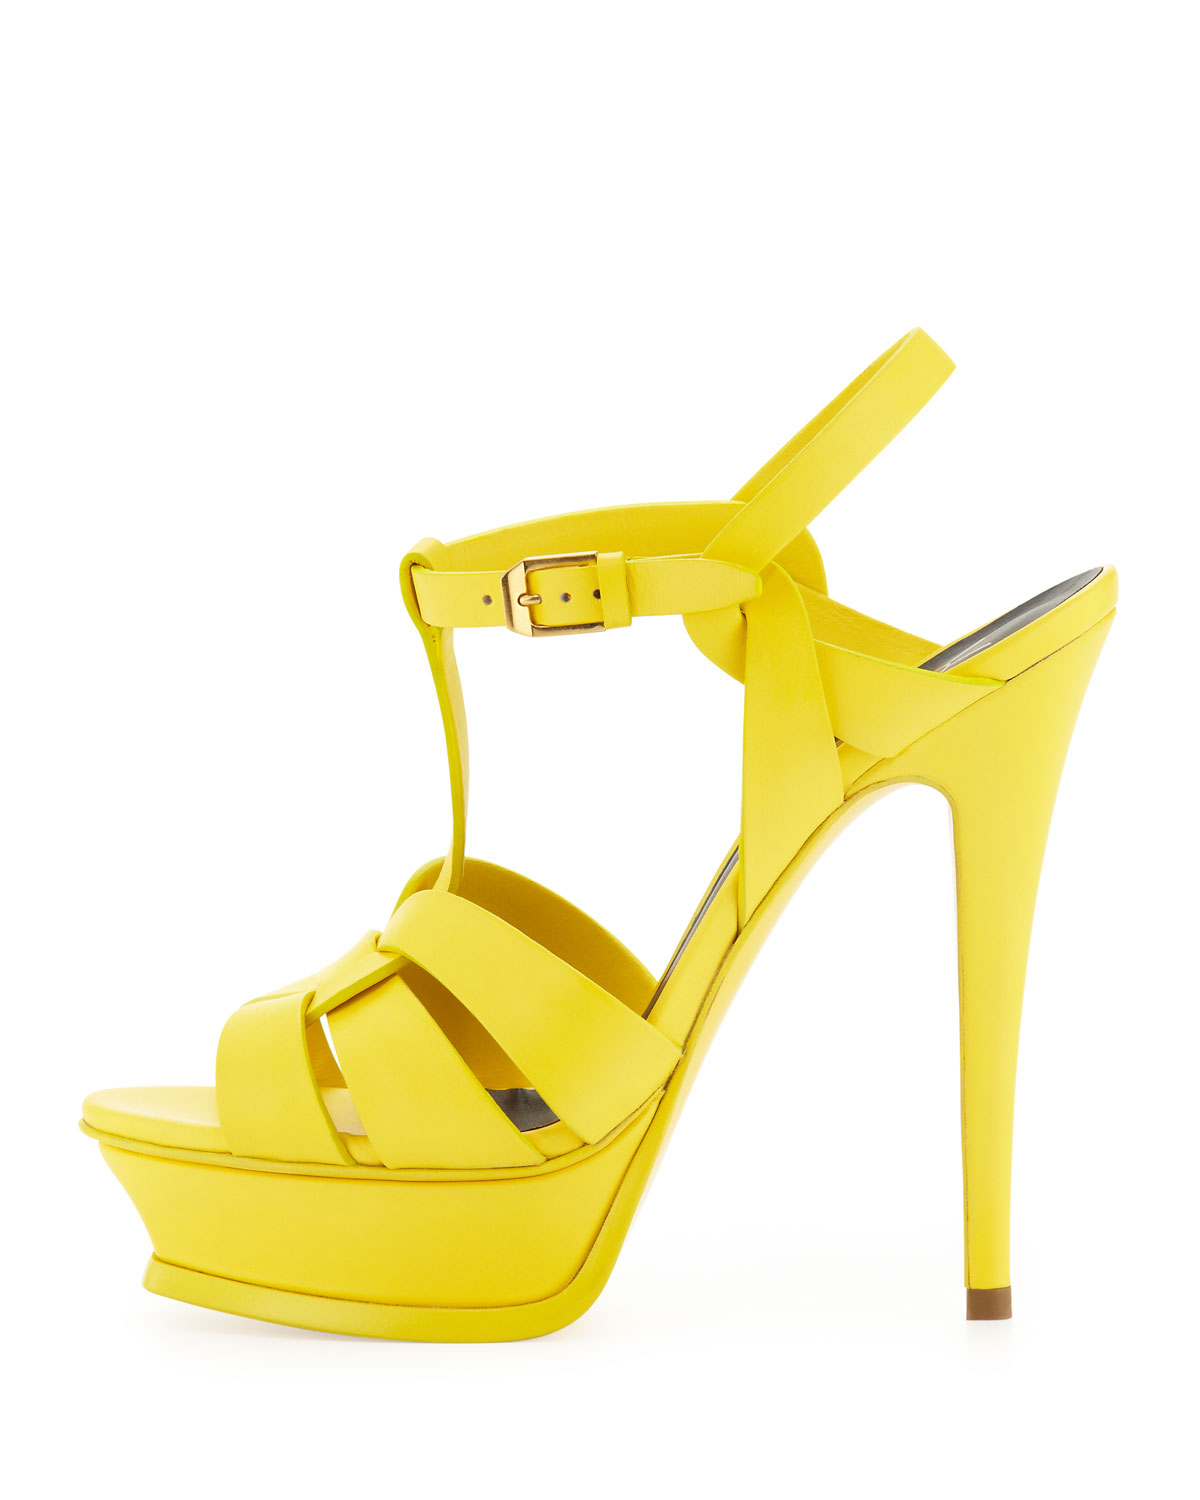 846b35eadc1 Lyst - Saint Laurent Womens Tribute High-Heel Leather Sandal Mustard ...